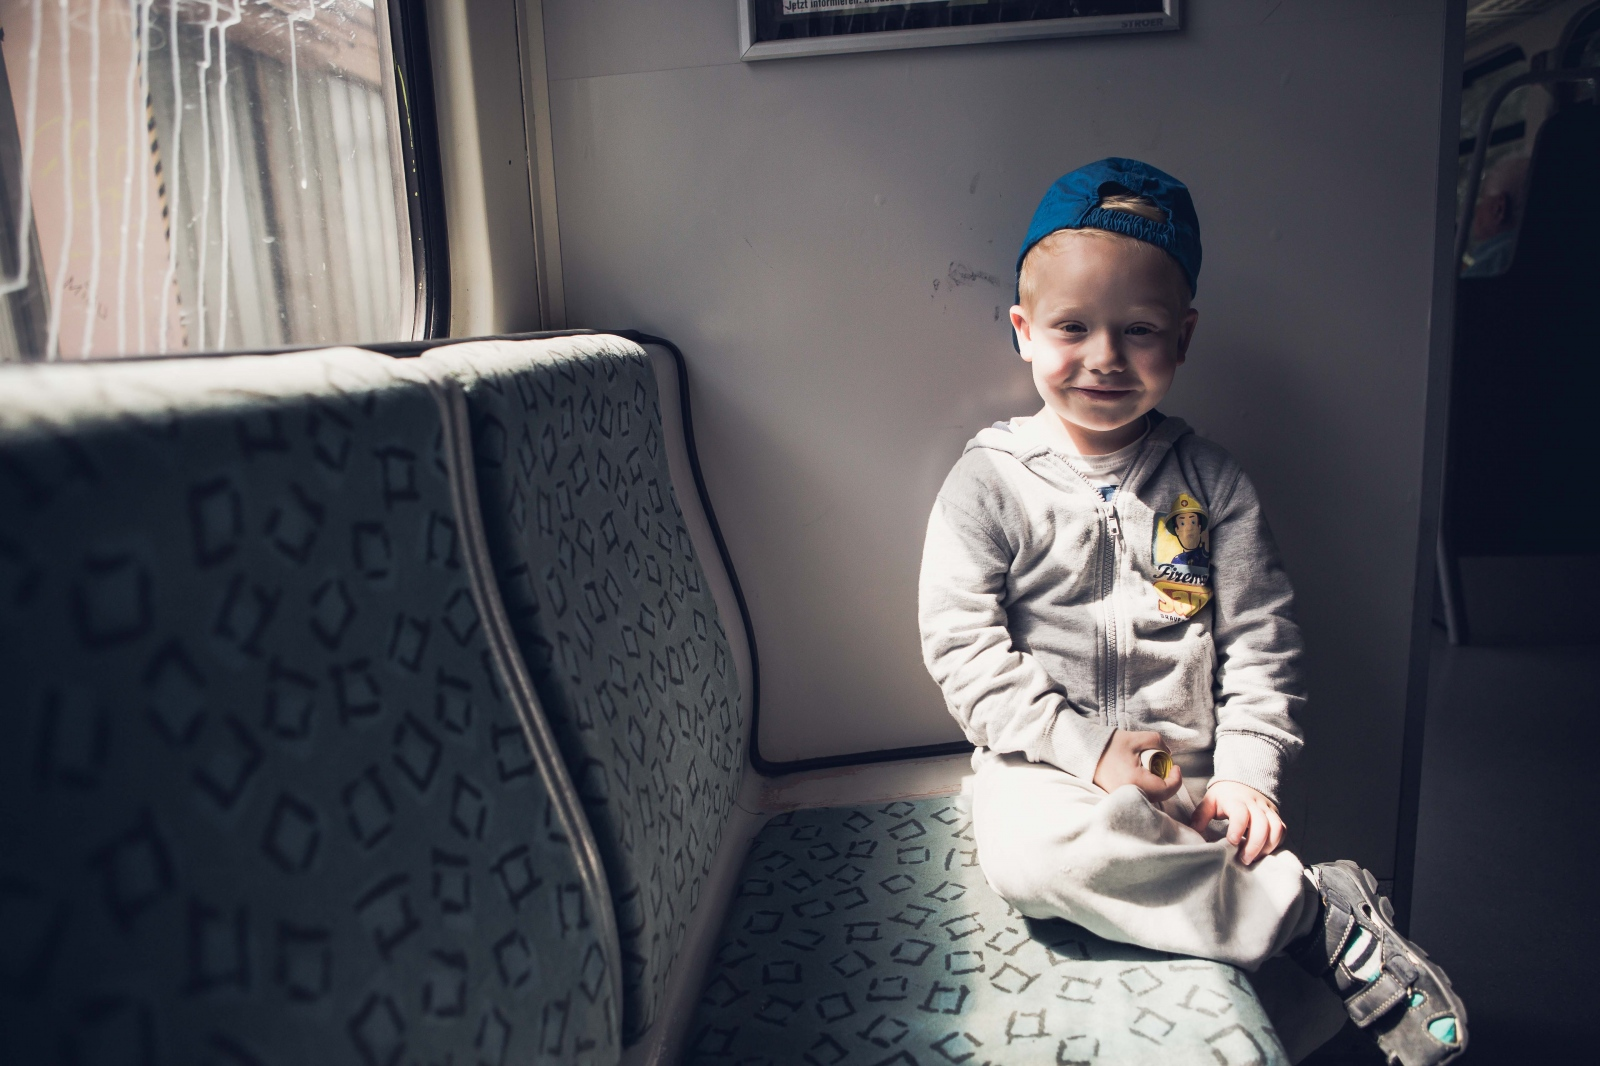 Oskar B., 4, rides the subway during a day of running errands with his mother. Claudia had been married to her abusive, drug addict husband and father of her youngest son, Oskar, for almost ten years when she finally decided to leave him in April 2016. She has since found a new home, where she lives with her three sons, as well as finding a new job.